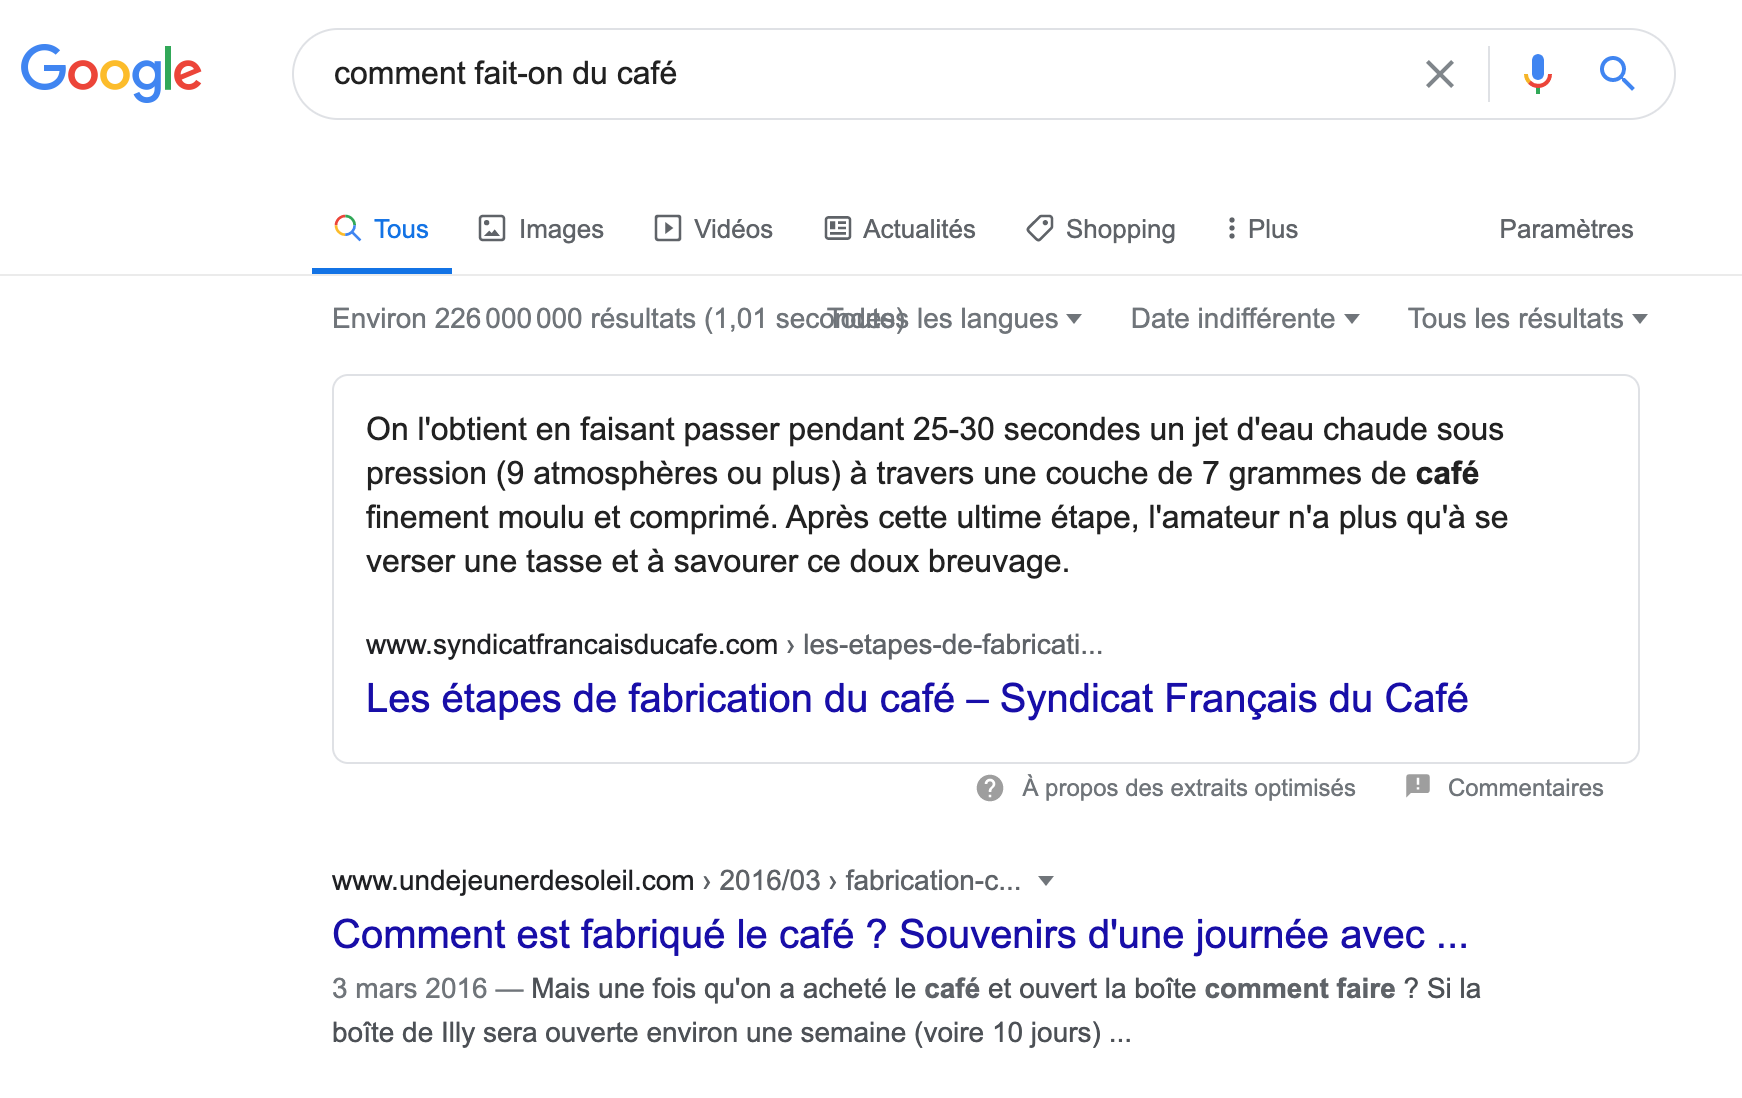 featured snippet position 0